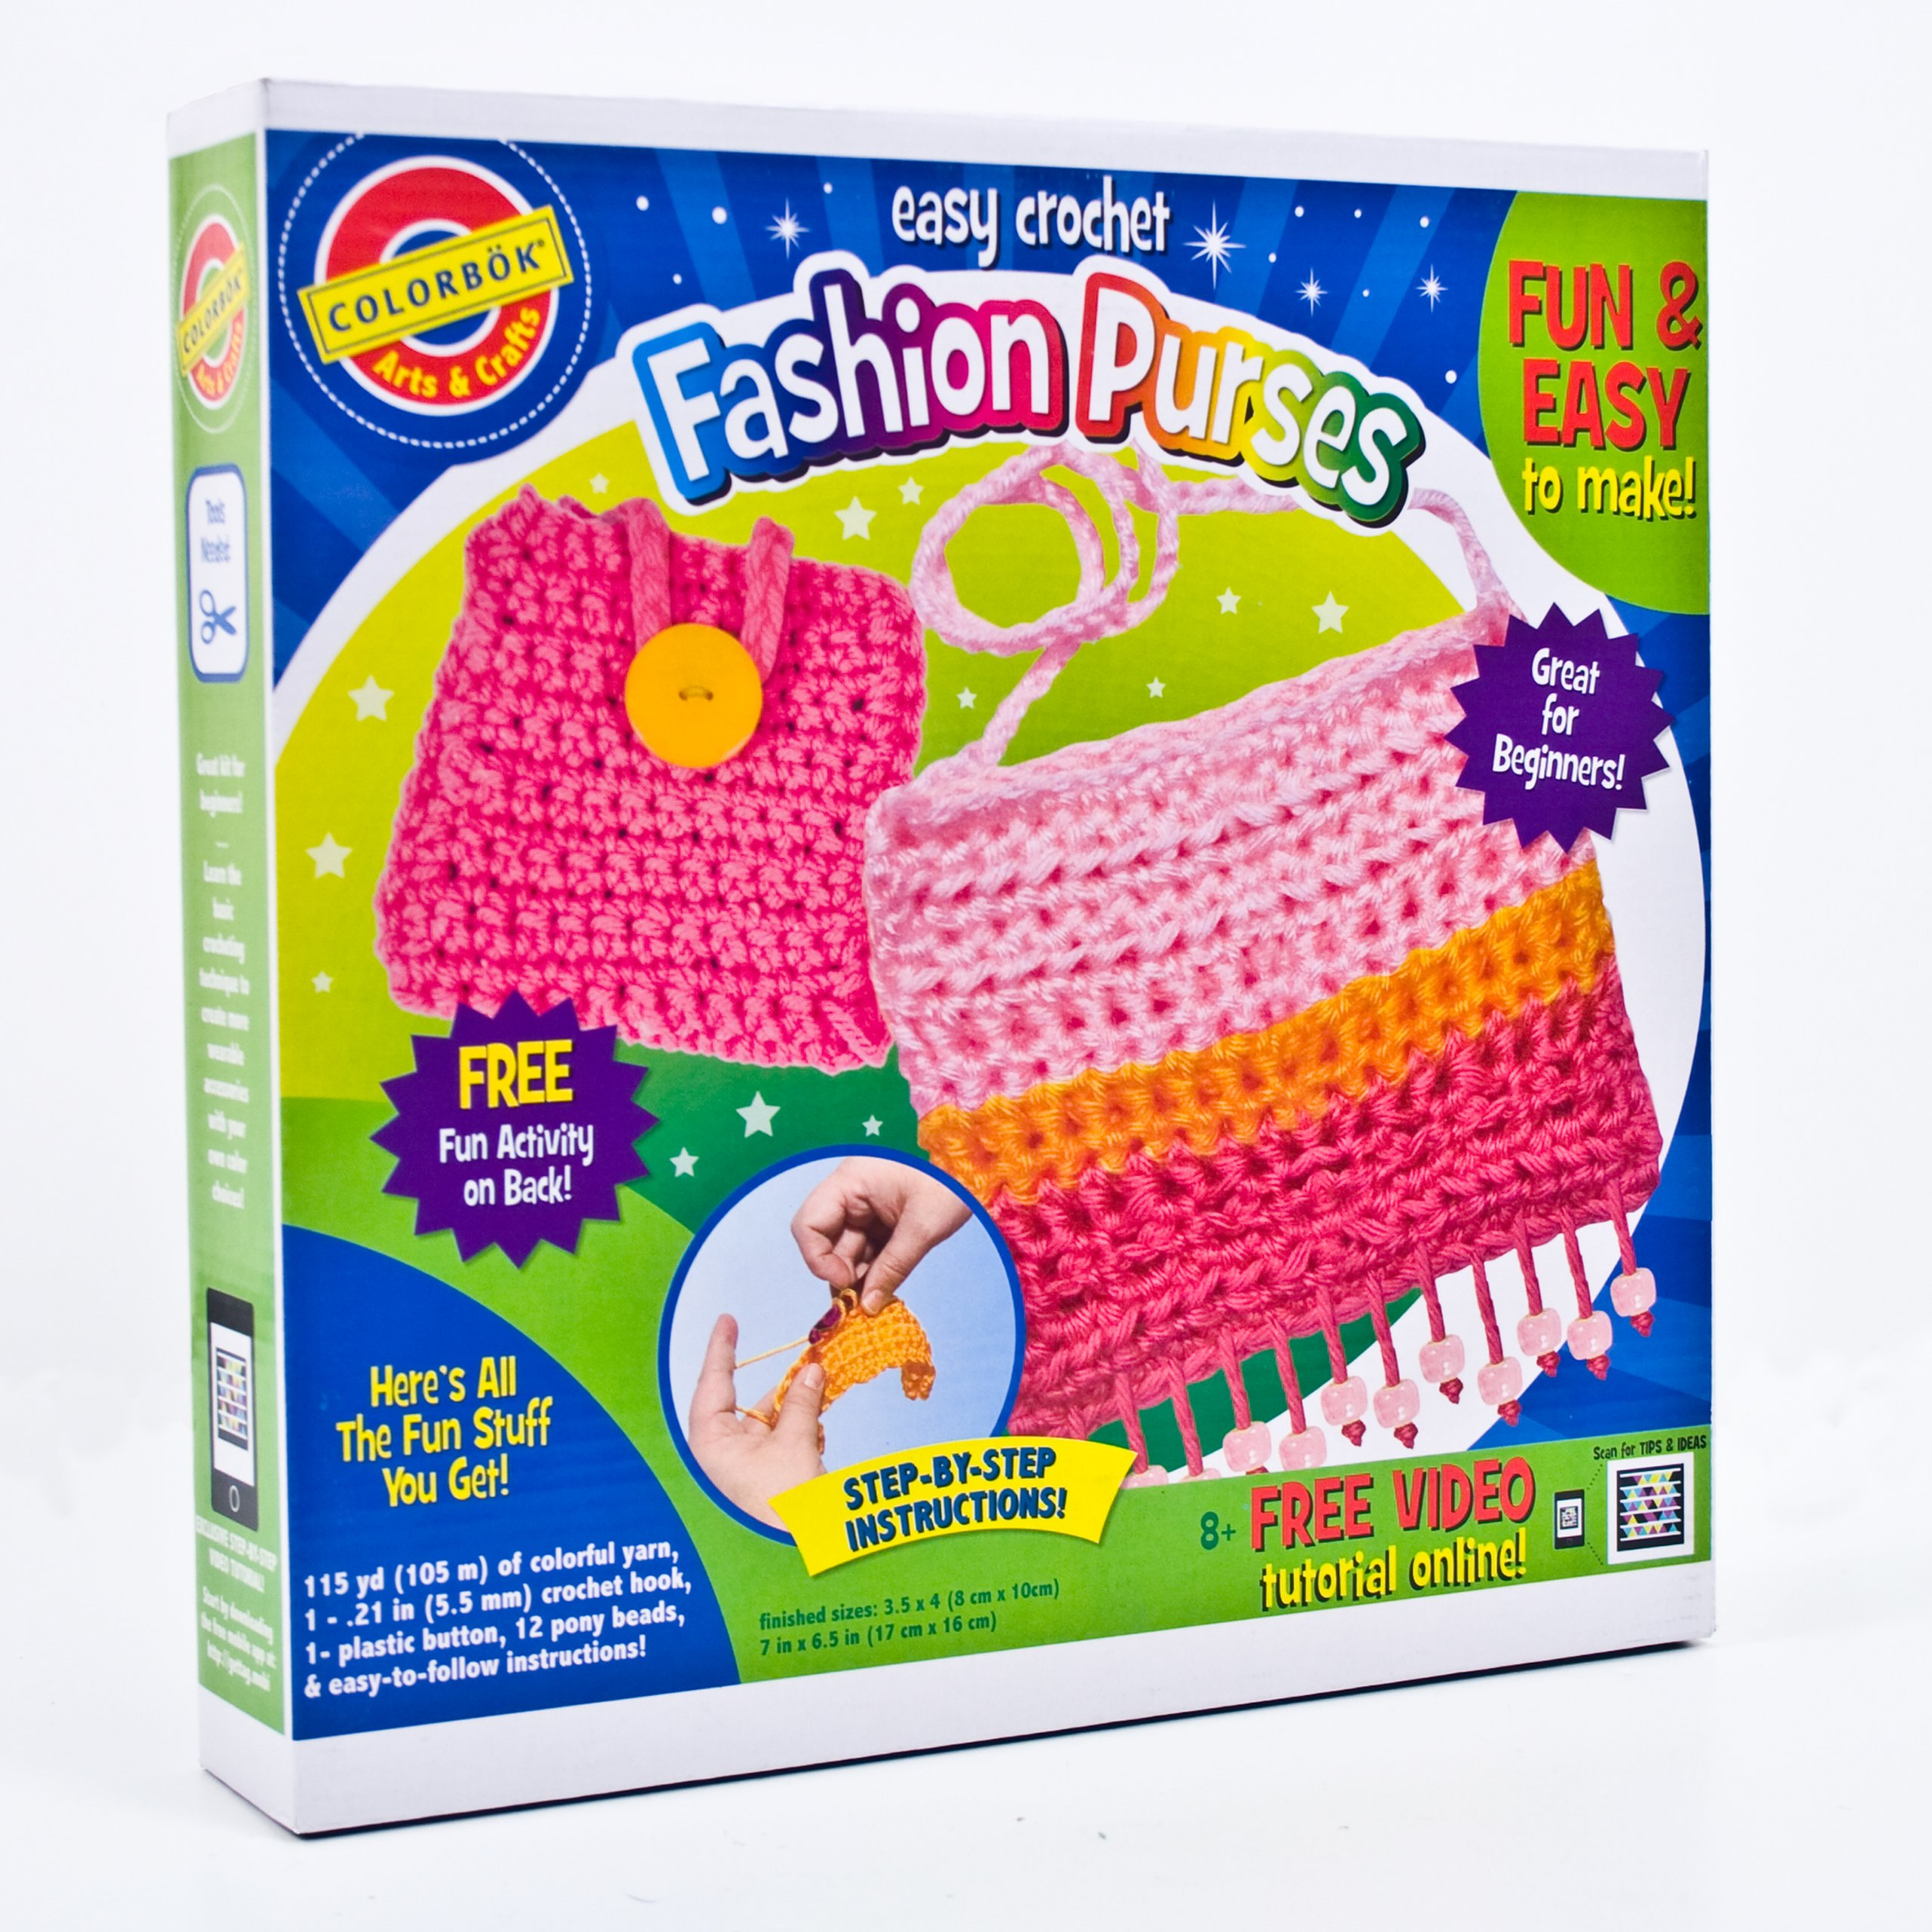 Colorbok Easy Crochet Fashion Purses by Colorbok (Image #1)